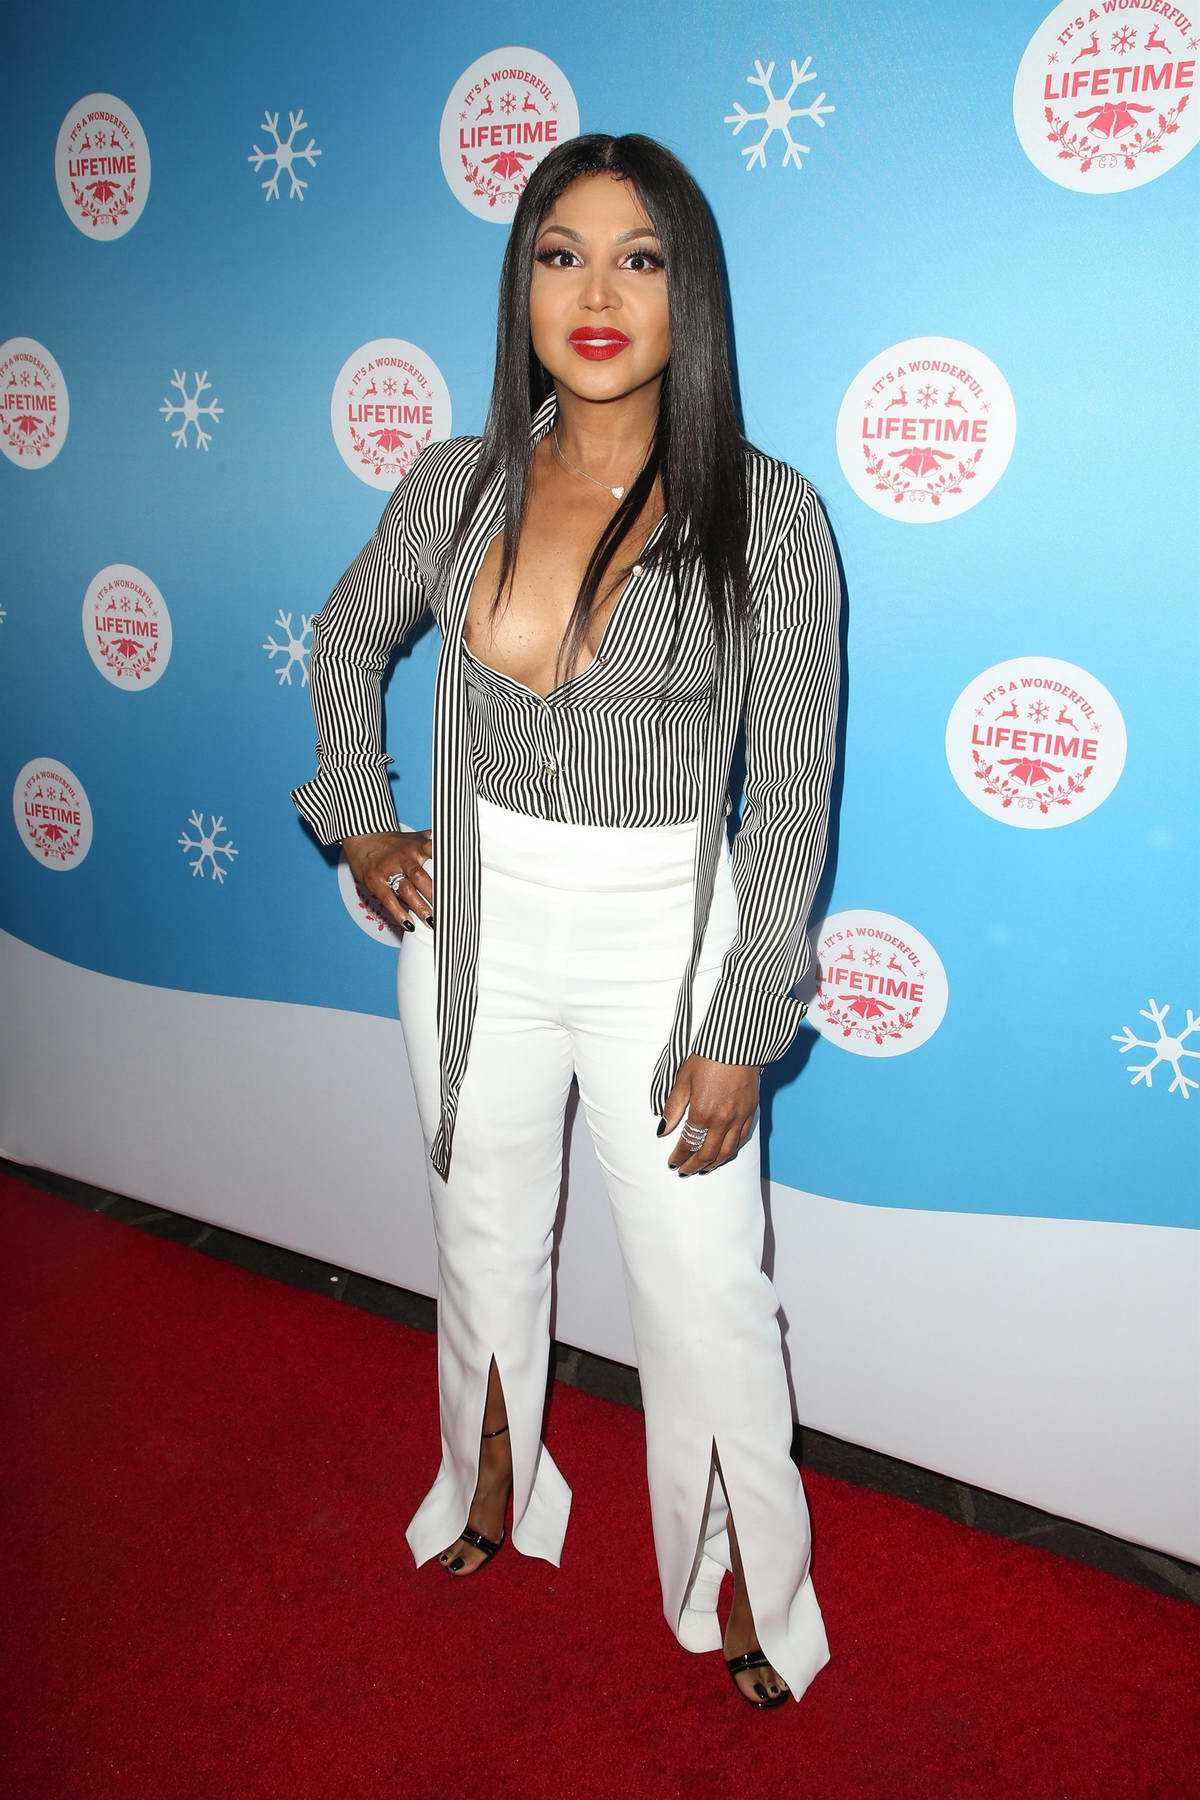 Toni Braxton attends Opening night of Lifetime's life-sized Gingerbread House Experience at The Grove in Los Angeles